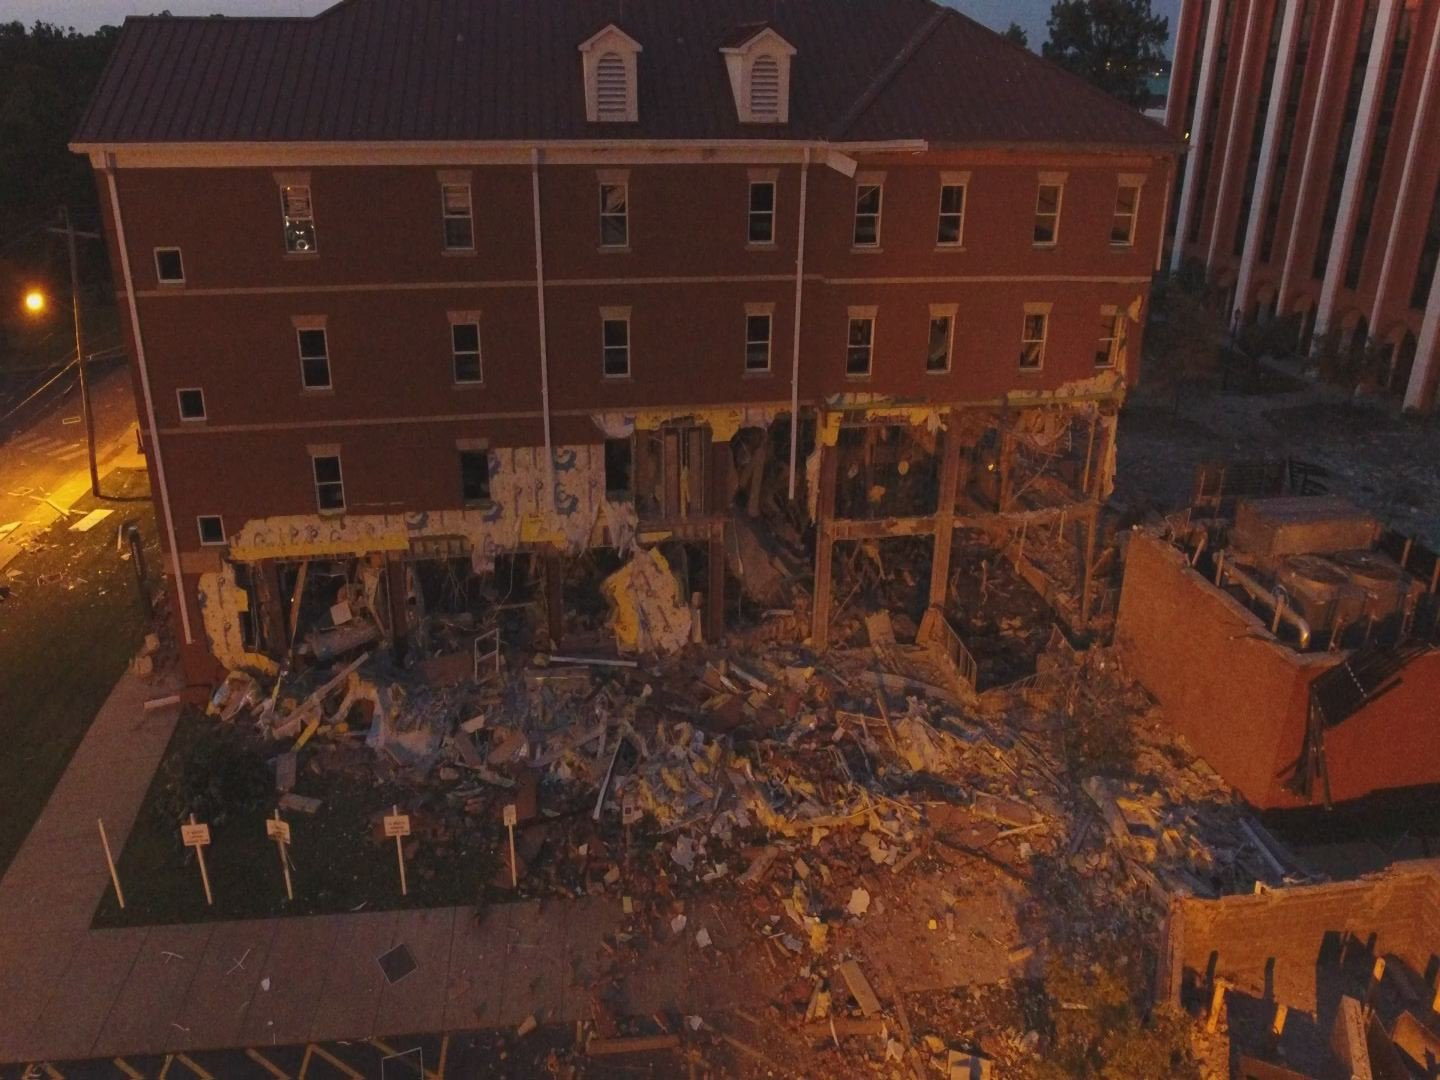 Explosion at Murray State University dorm felt on and off campus